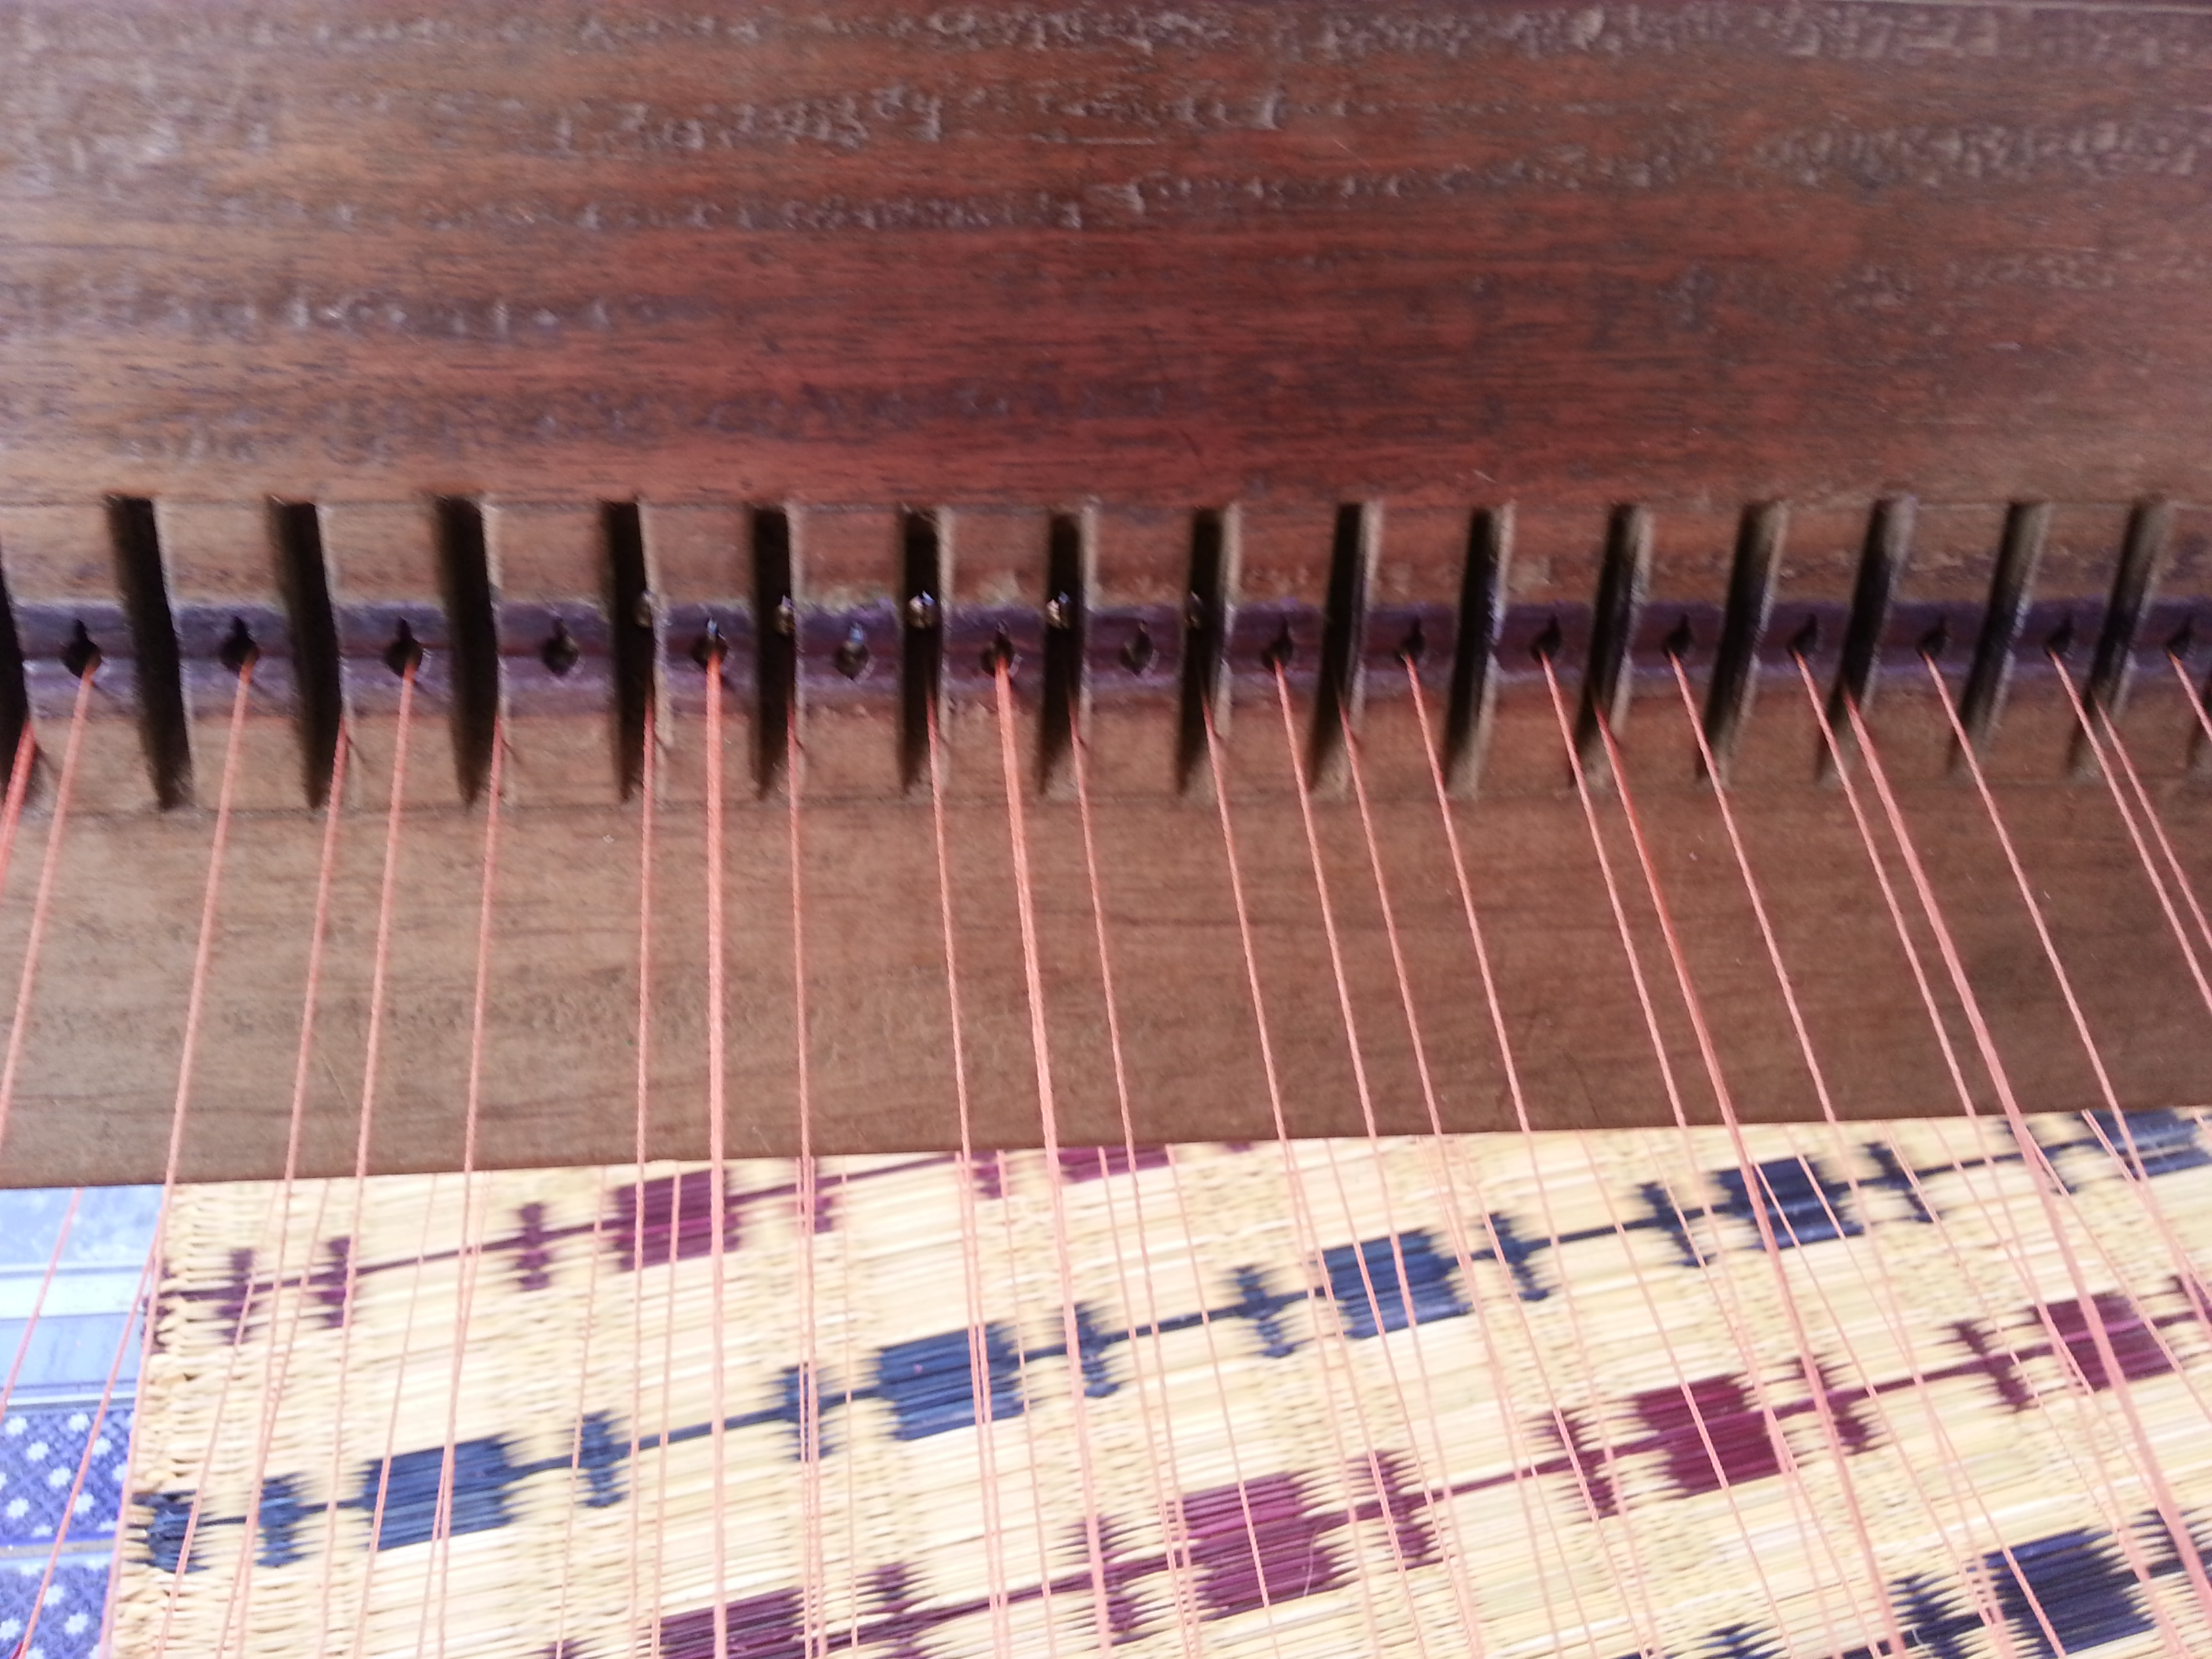 Weaving loom close up view